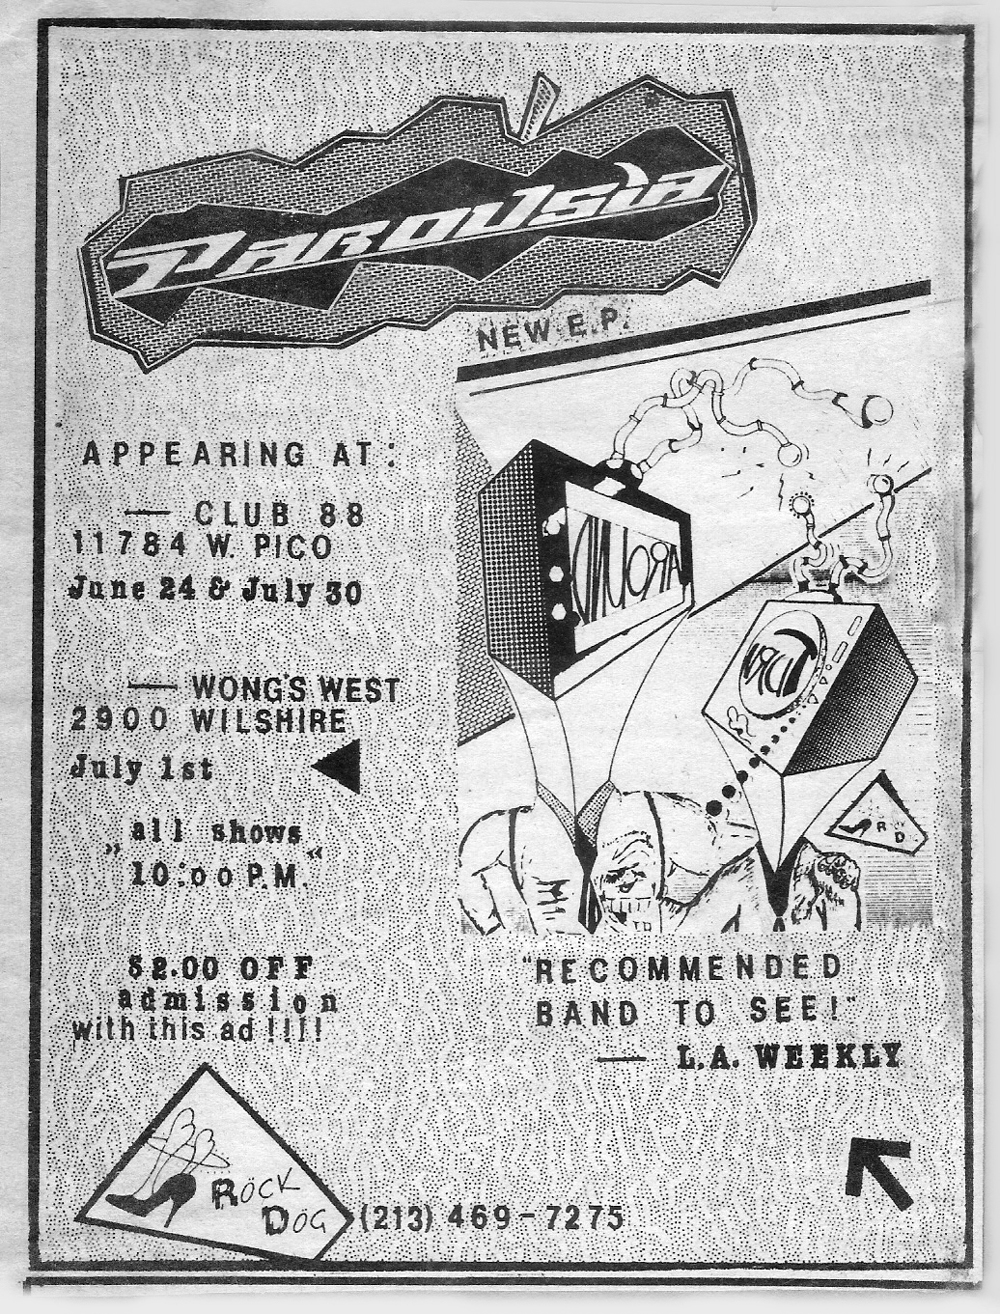 LA Weekly ad - Club 88 - June 24 & July 30, 1988